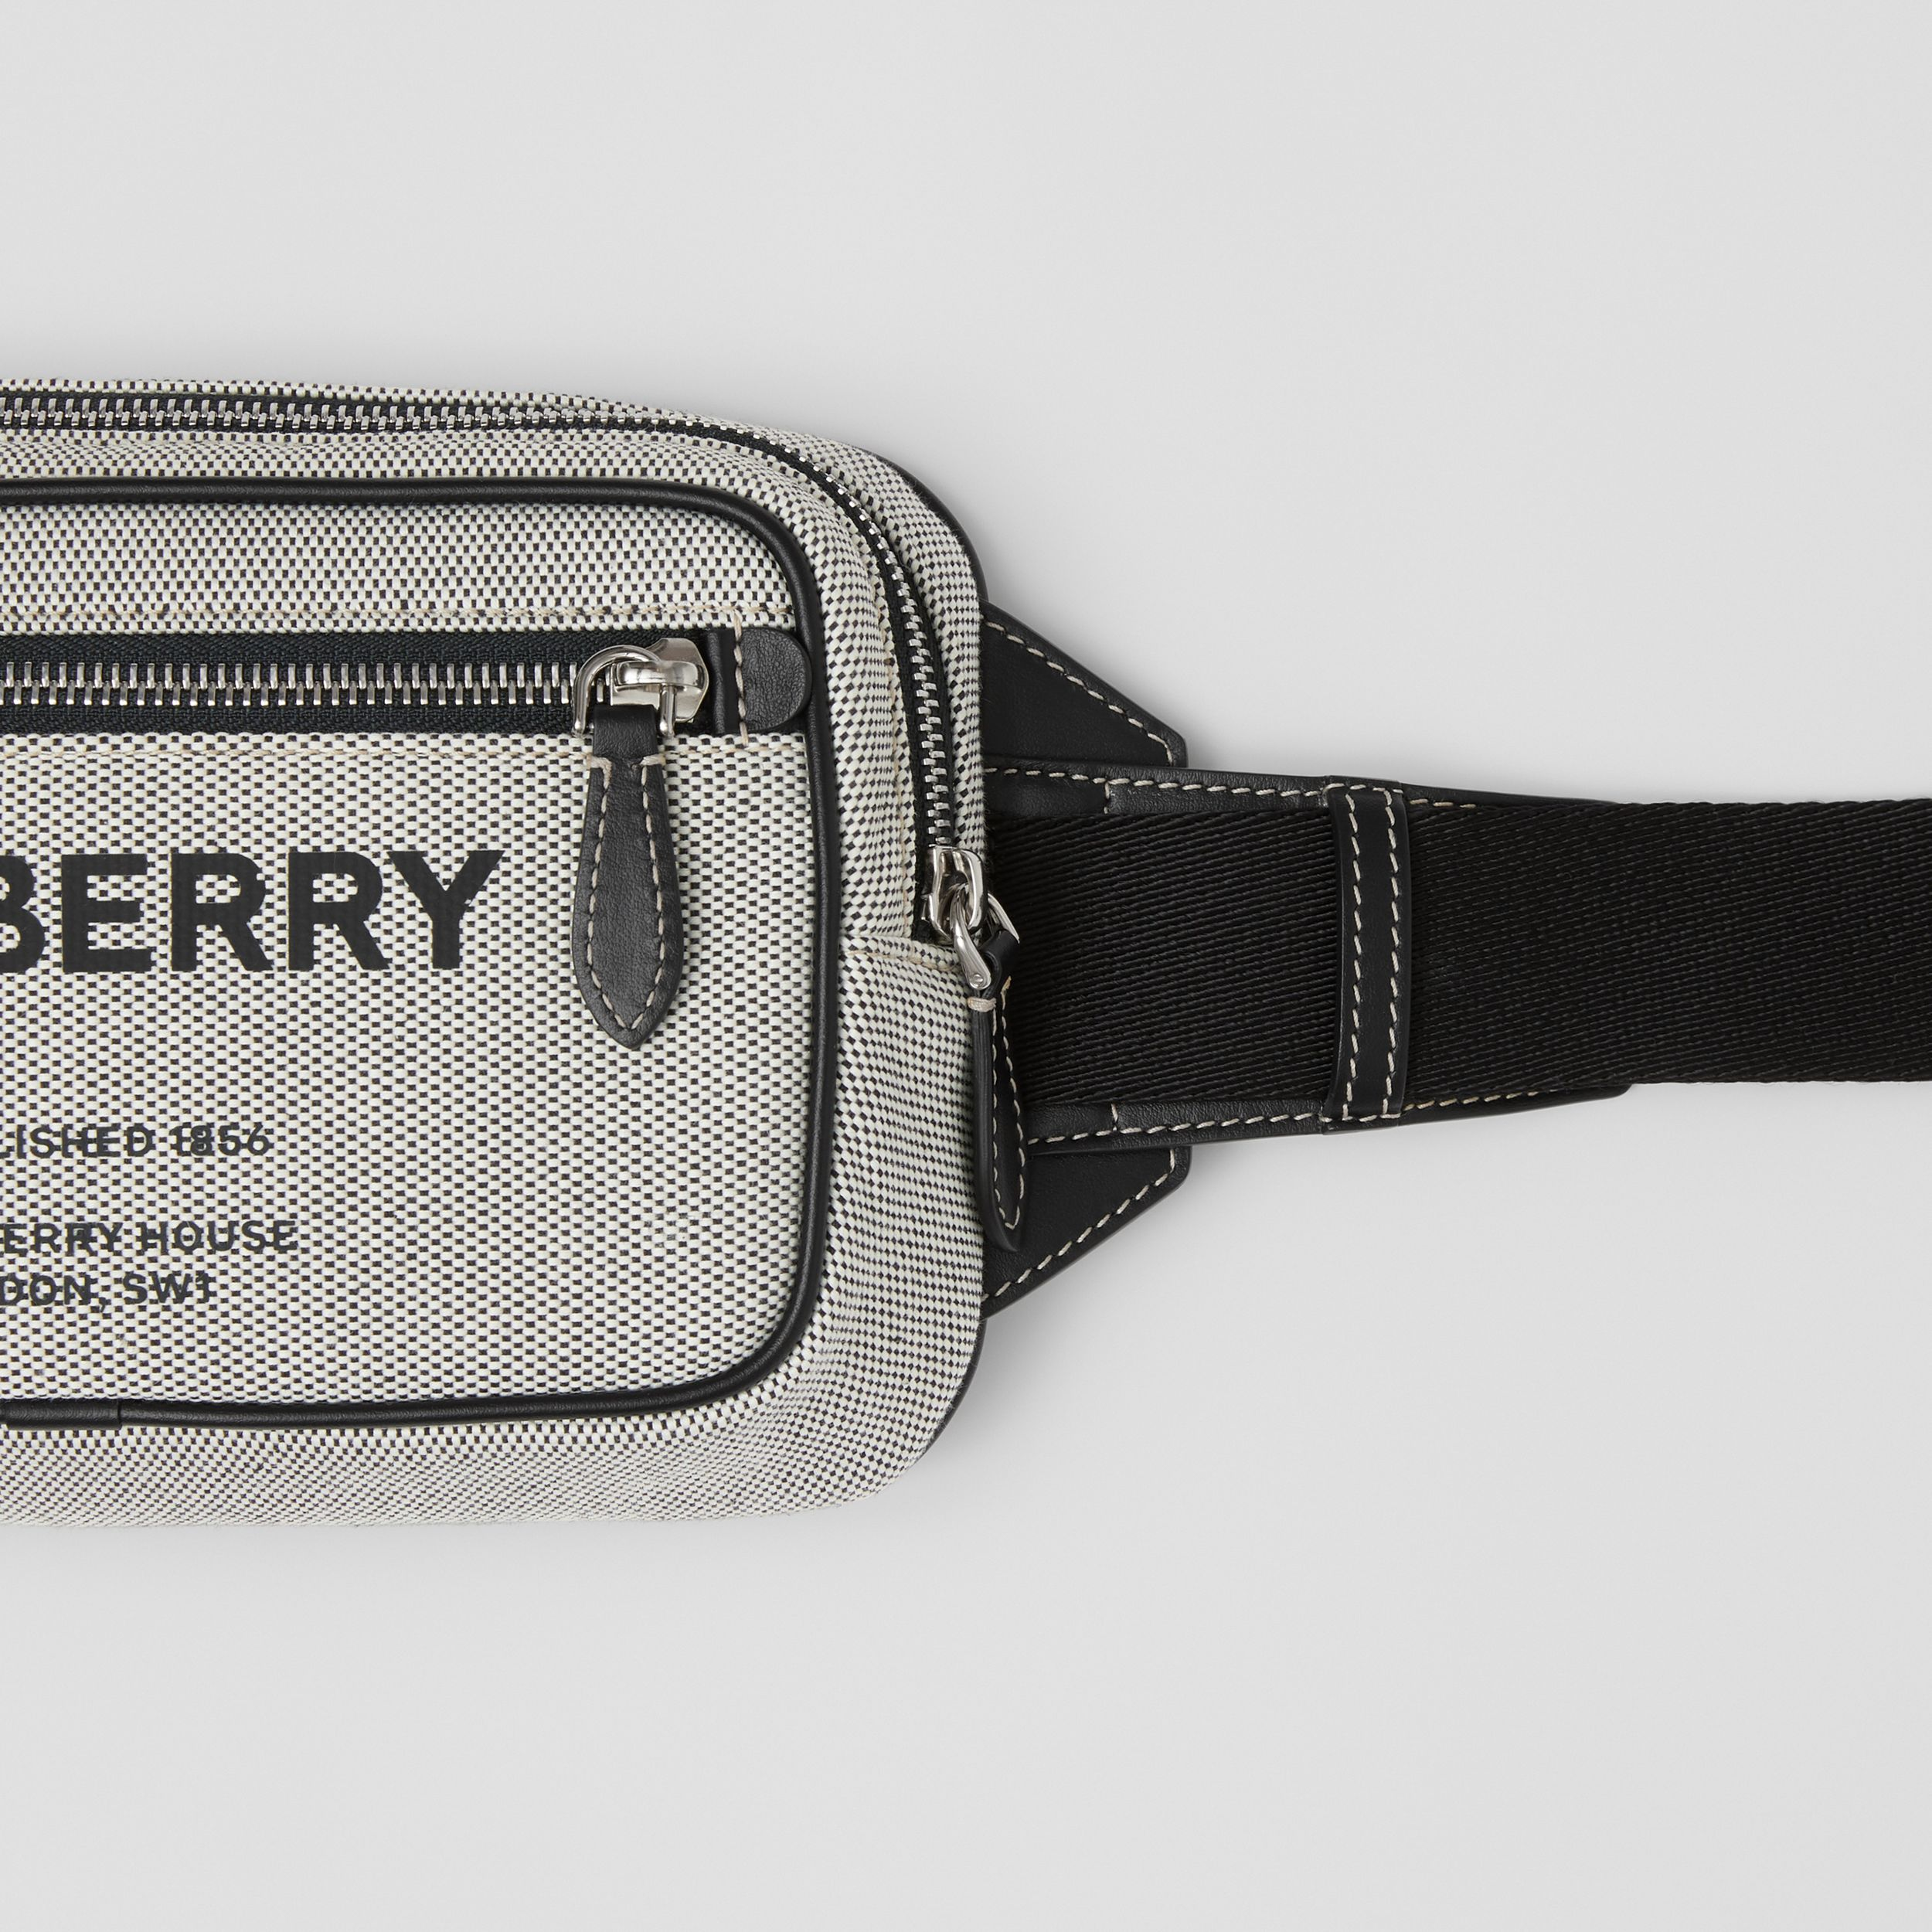 Horseferry Print Cotton Canvas Bum Bag in Black - Men | Burberry - 2